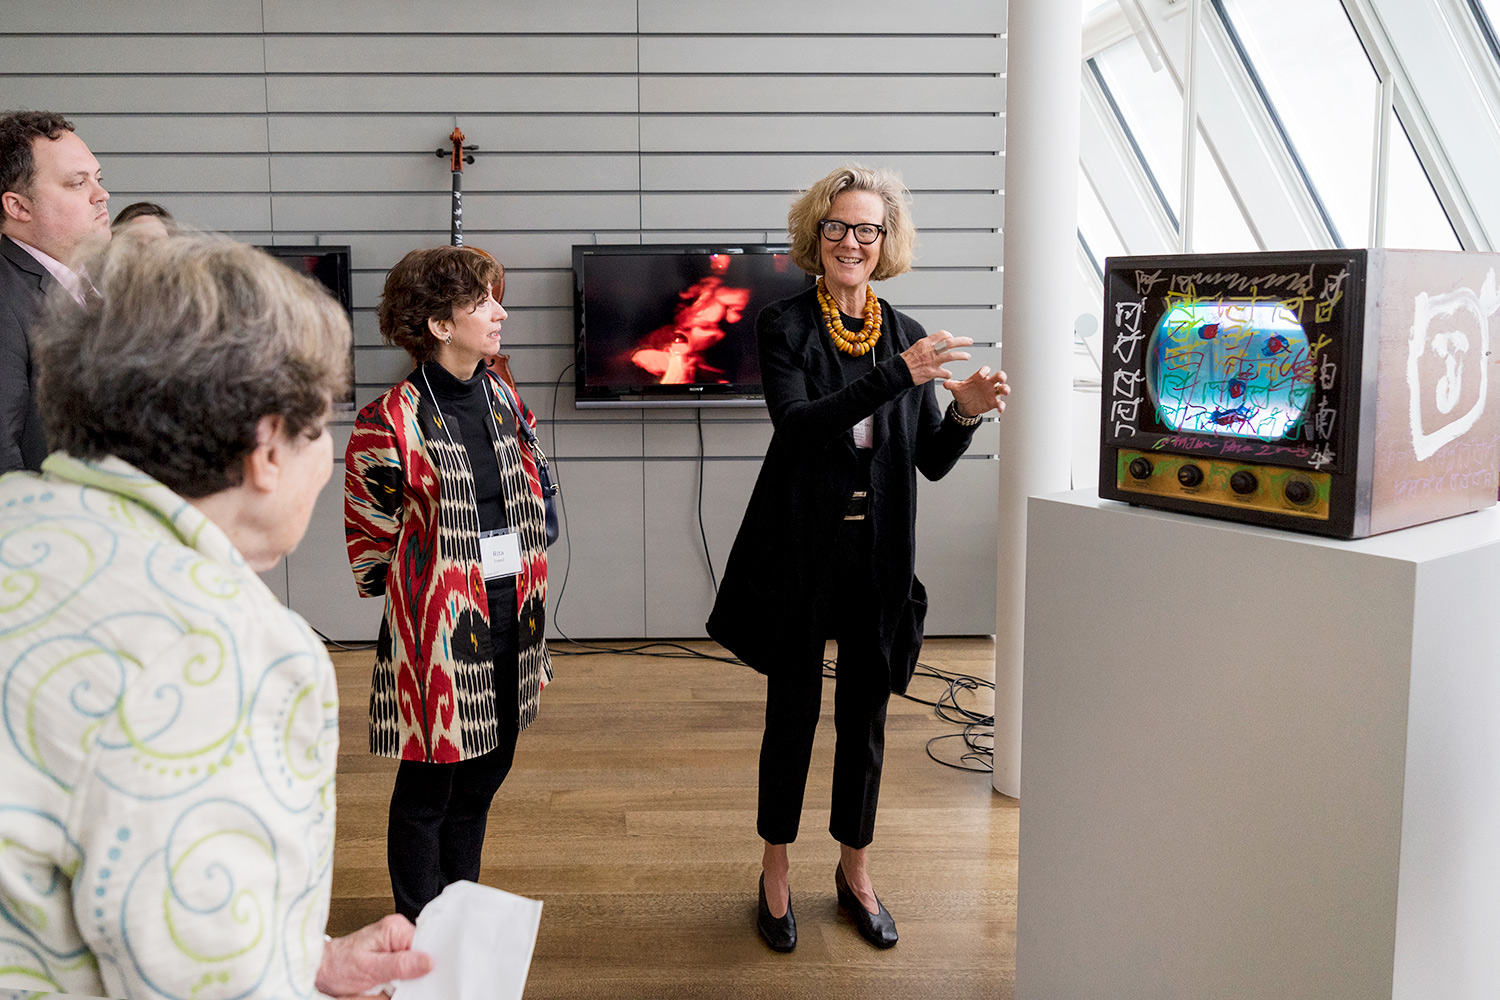 Mary Schneider Enriquez, right, the Houghton Associate Curator of Modern and Contemporary Art, discusses a work by Nam June Paik with visitors. A recent gift of approximately 10 works by Paik will enhance the study of mid-20th-century art, video art, and related subjects.